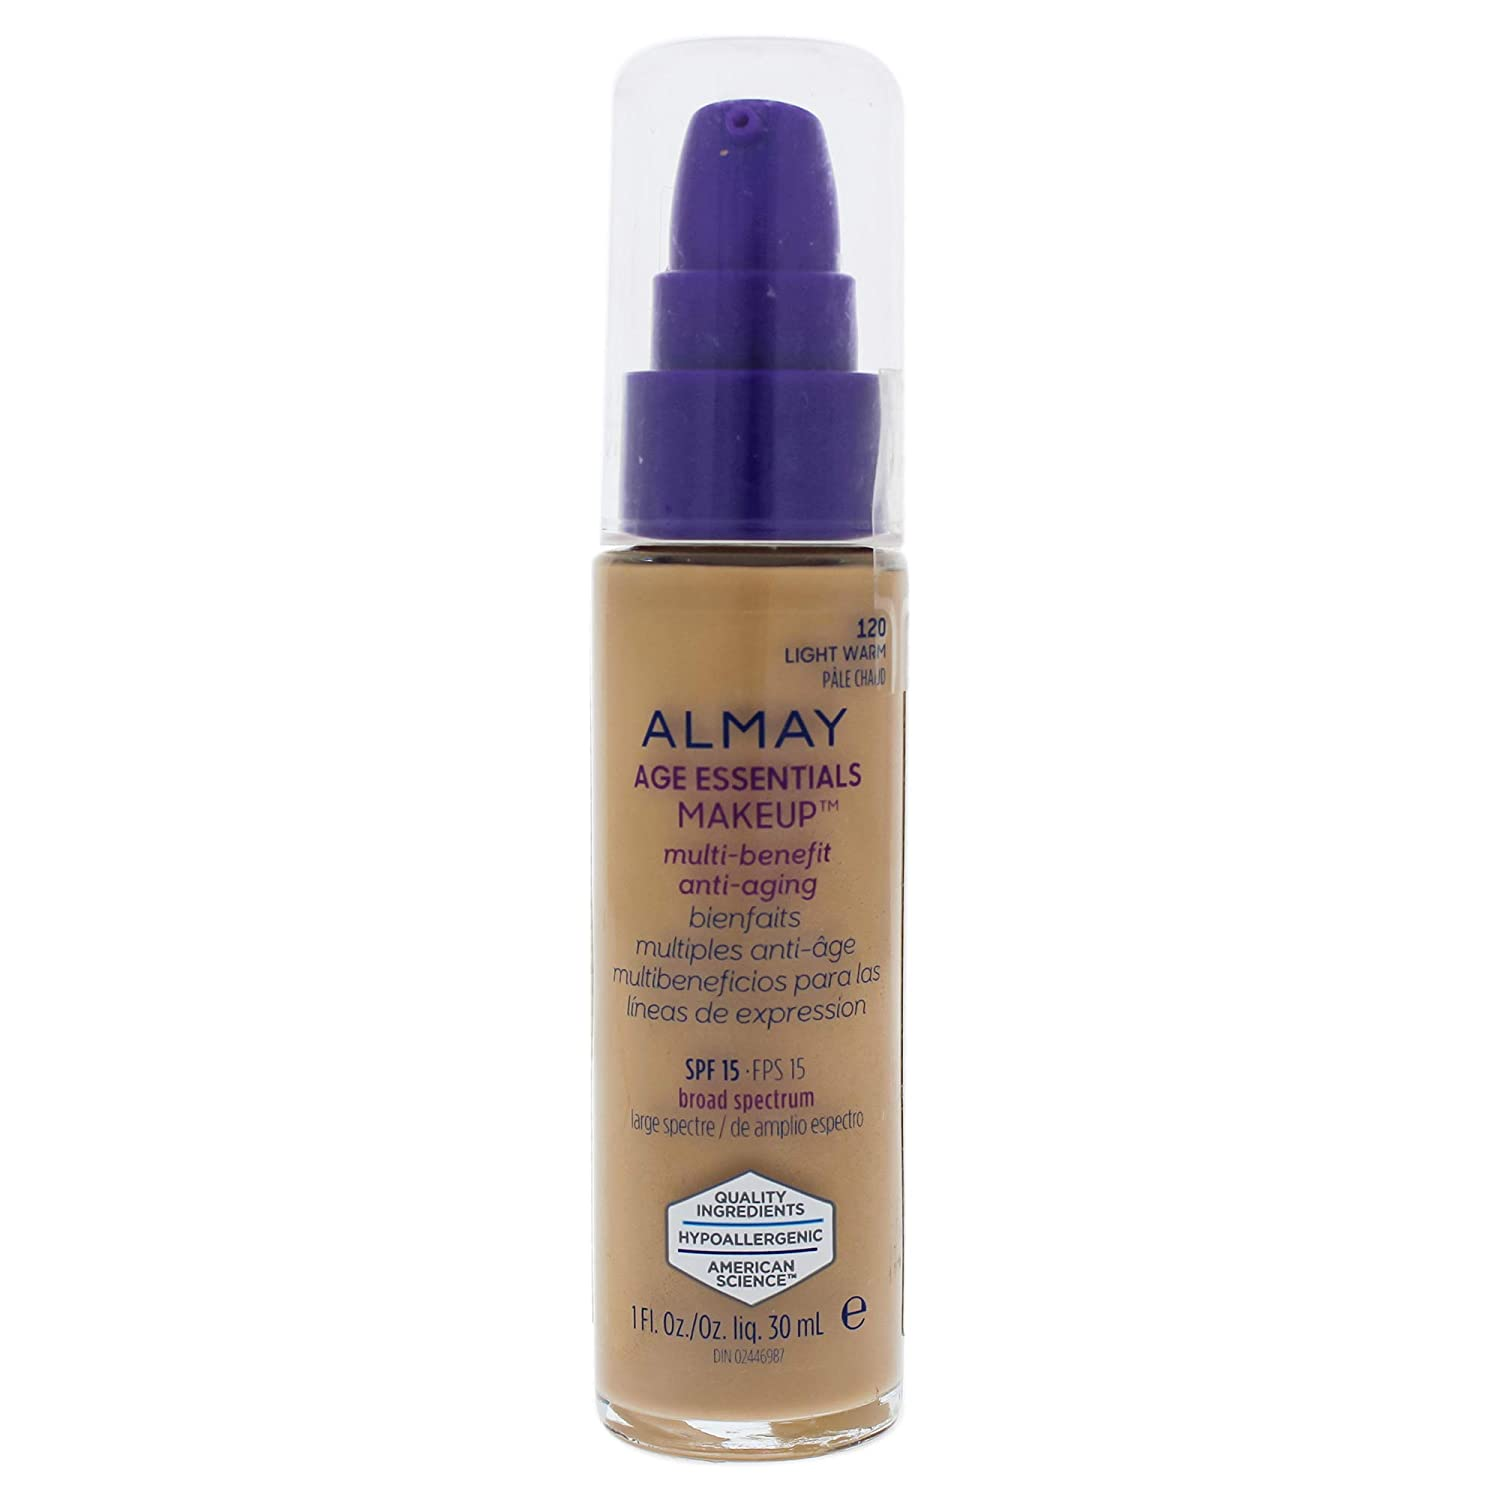 Almay Age Essentials Multi-benefit Anti-aging Makeup - 120 Light Warm By Almay for Women - 1 Oz Foundation, 1 Oz